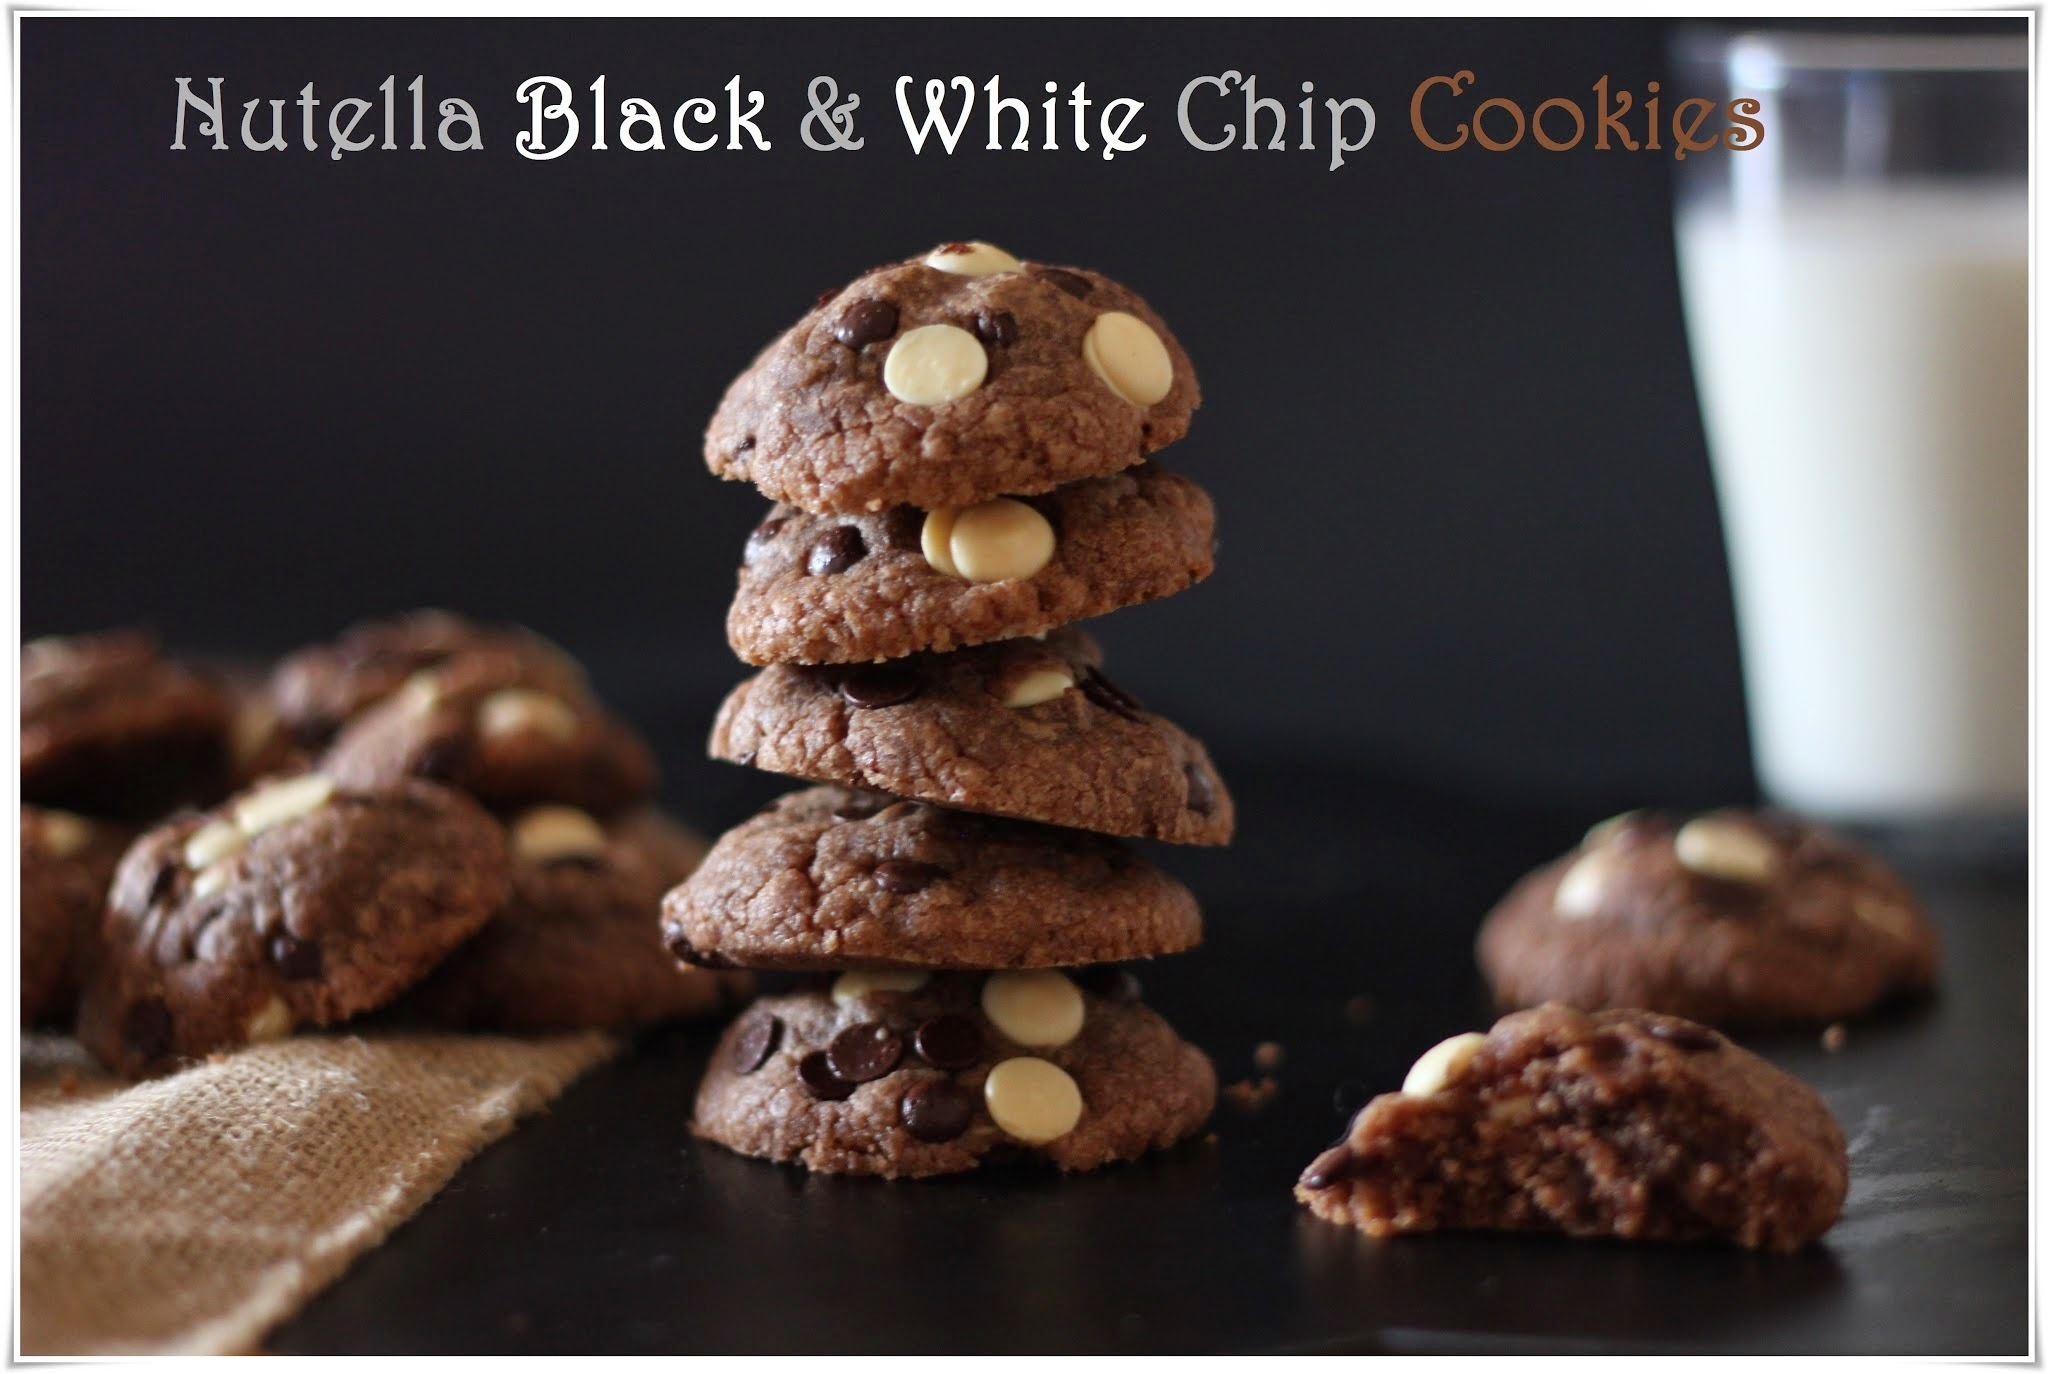 Nutella Black & White Chip Cookies